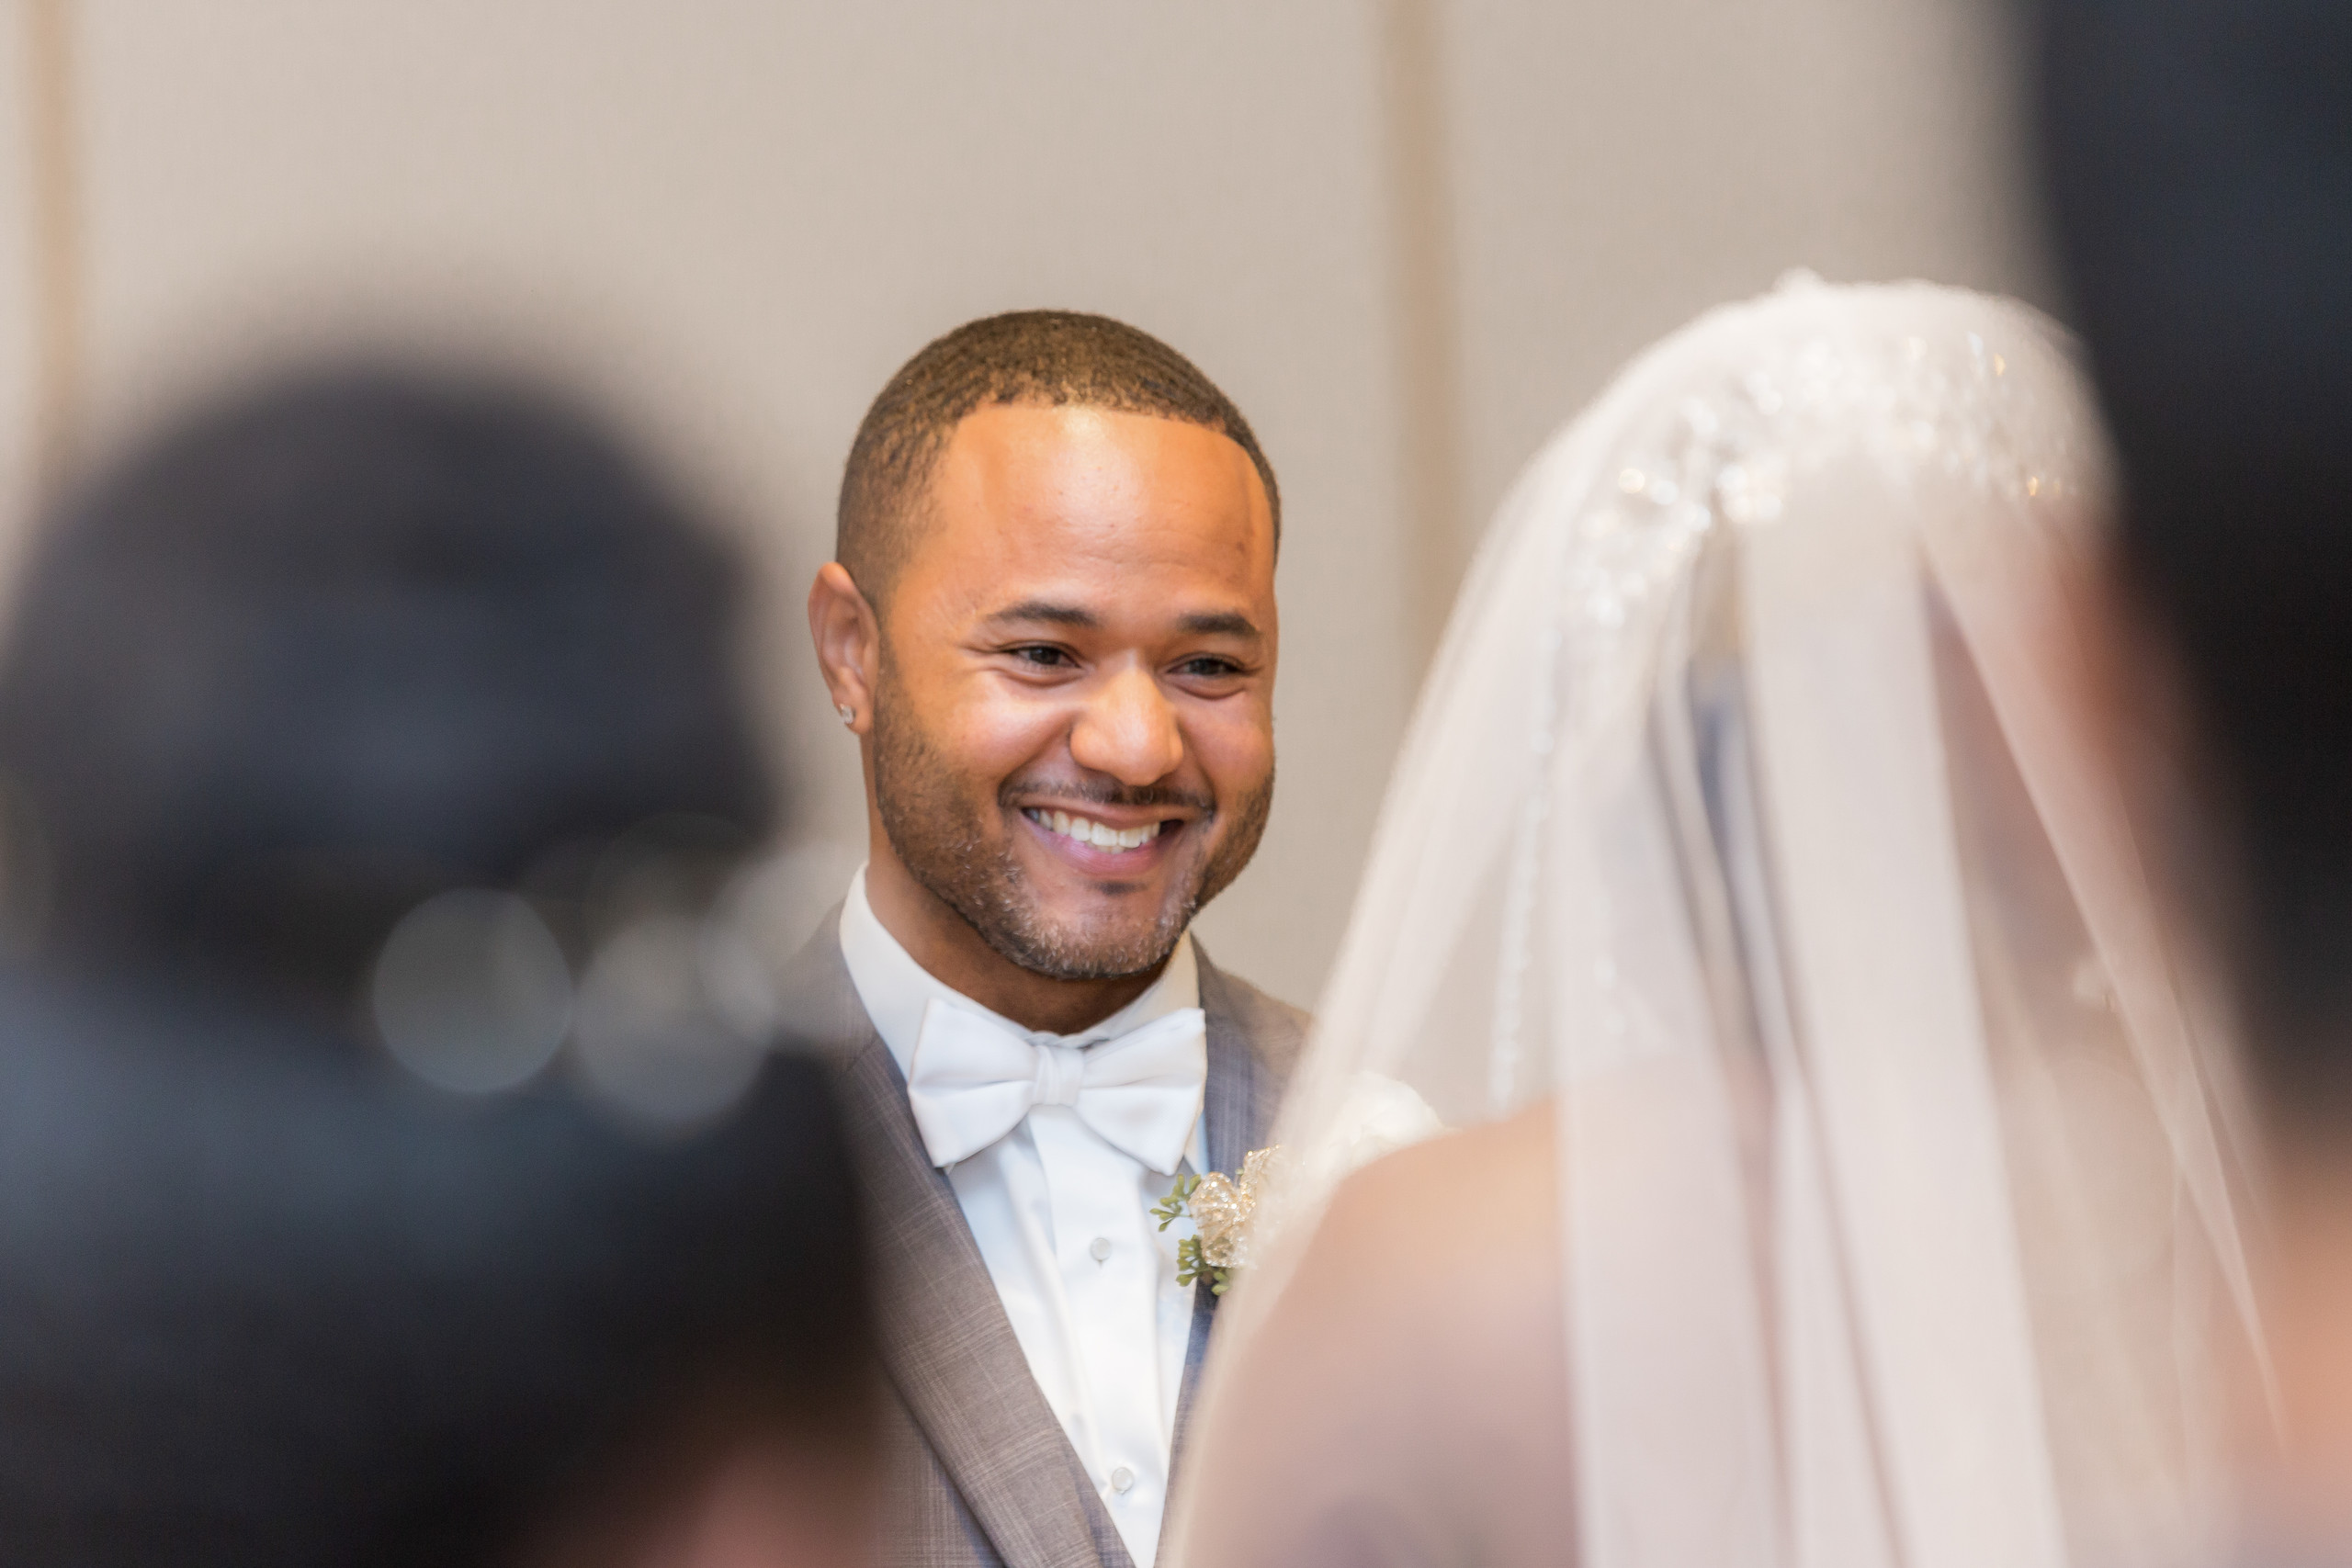 The groom smiles and gazes into the eyes of the bride during the wedding ceremony at the Hilton Main in Norfolk, Virginia.